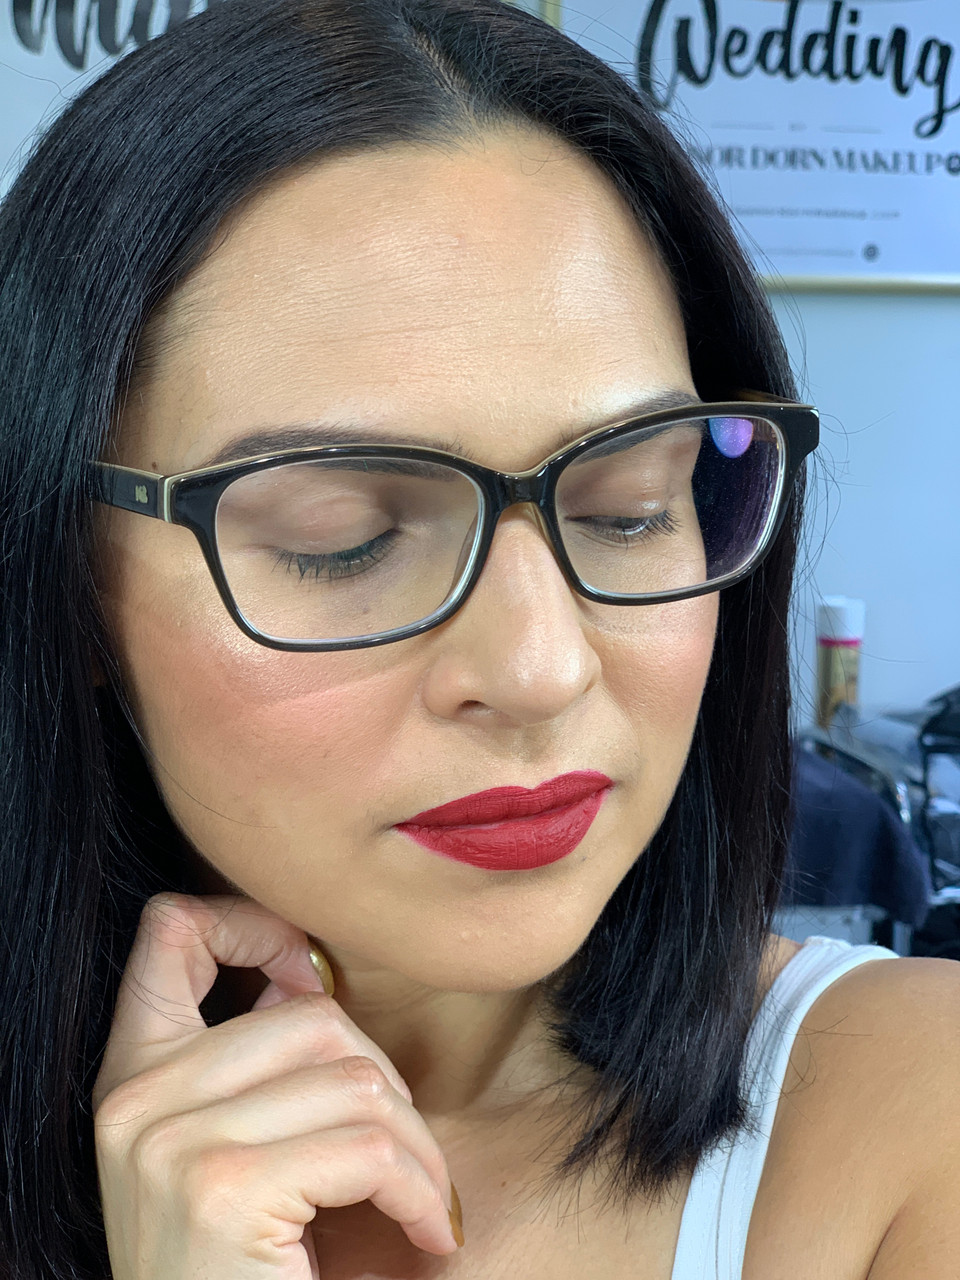 FRIDAY GLAM SESSION: Bold red & glowing skin